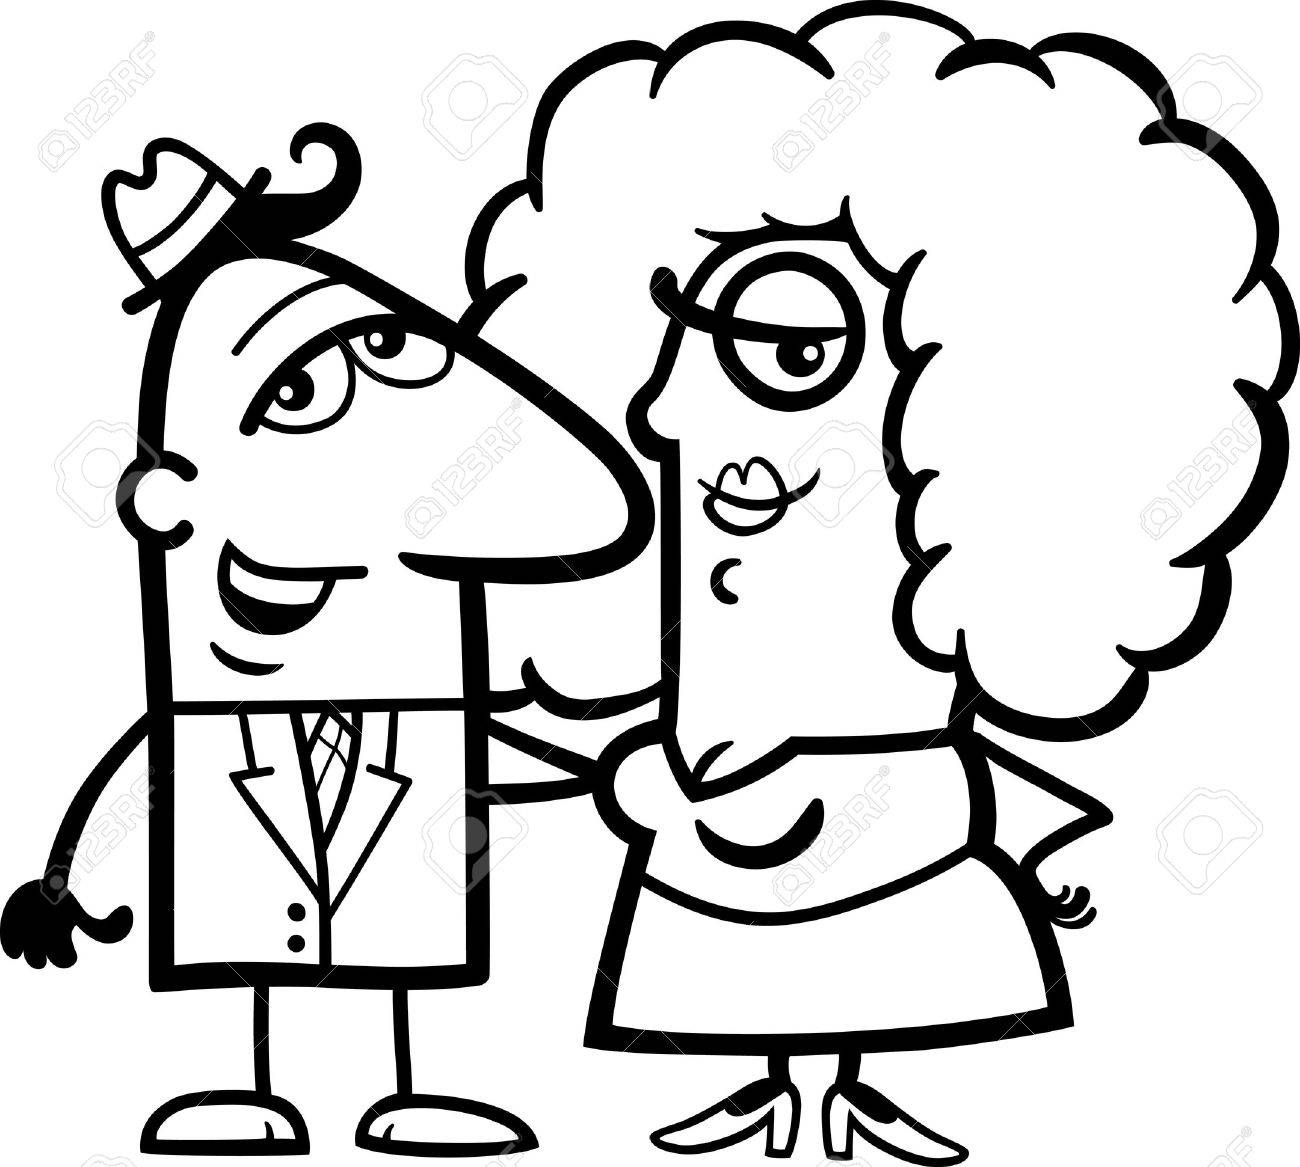 Black And White Cartoon Illustration Of Funny Man Woman Couple In Love For Coloring Book